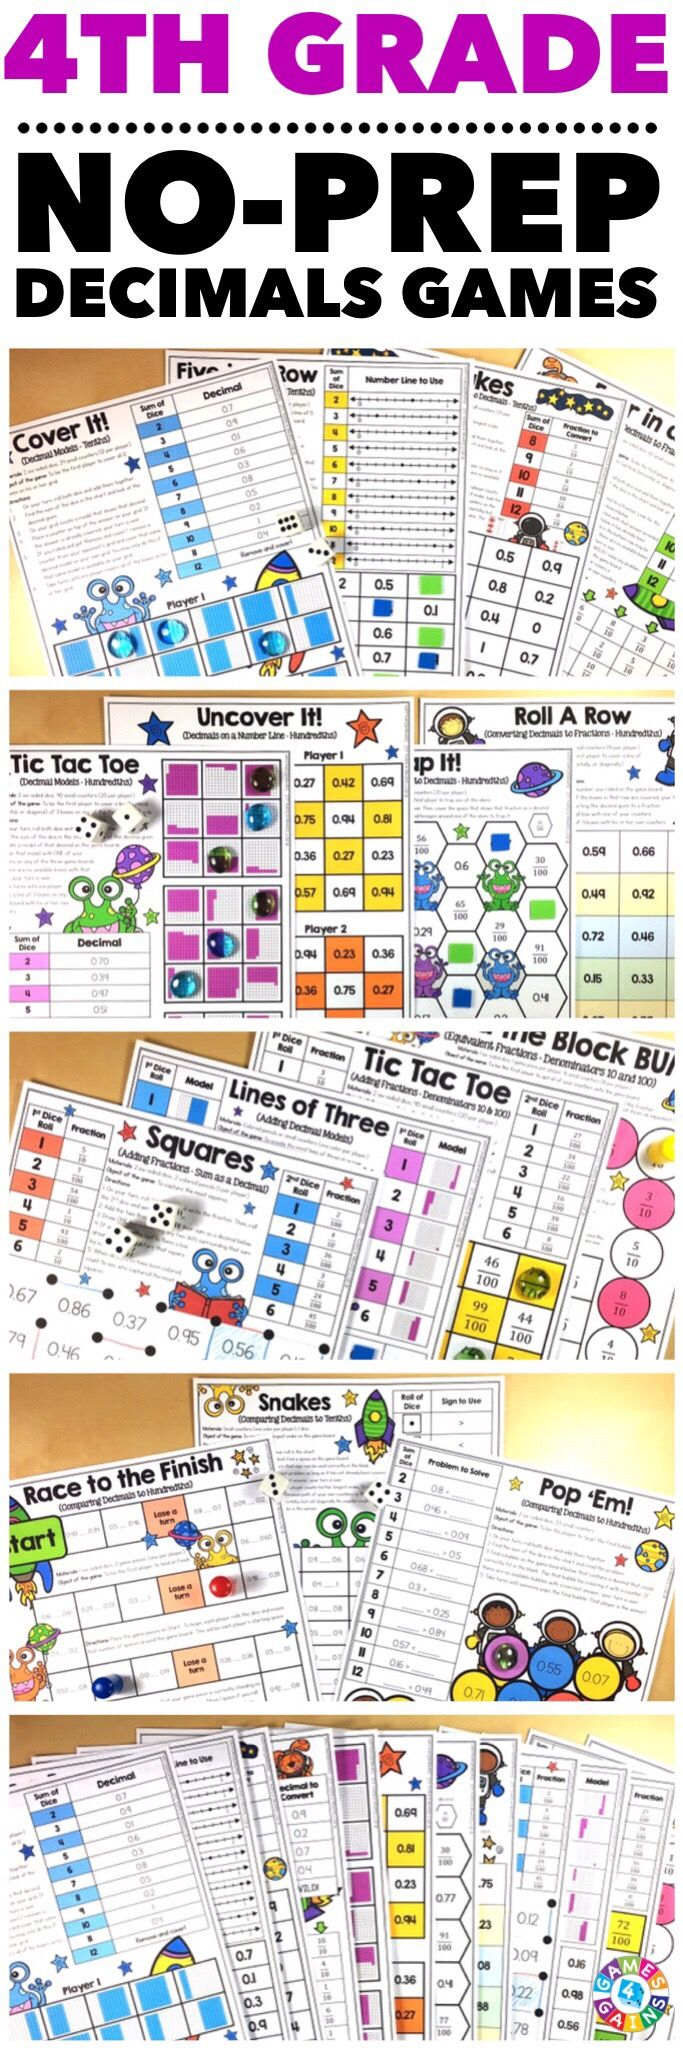 """Kids are LOVING these games during rotation time to reinforce standards."" This 4th Grade Decimals Games Pack includes 15 differentiated games for practicing converting fractions to decimals, equivalent fractions and decimals, writing decimals to hundredths, adding fractions with denominators of 10 and 100 and expressing their answer as a decimal, and comparing decimals to hundredths. These games support the 4th grade CCSS decimal standards!"